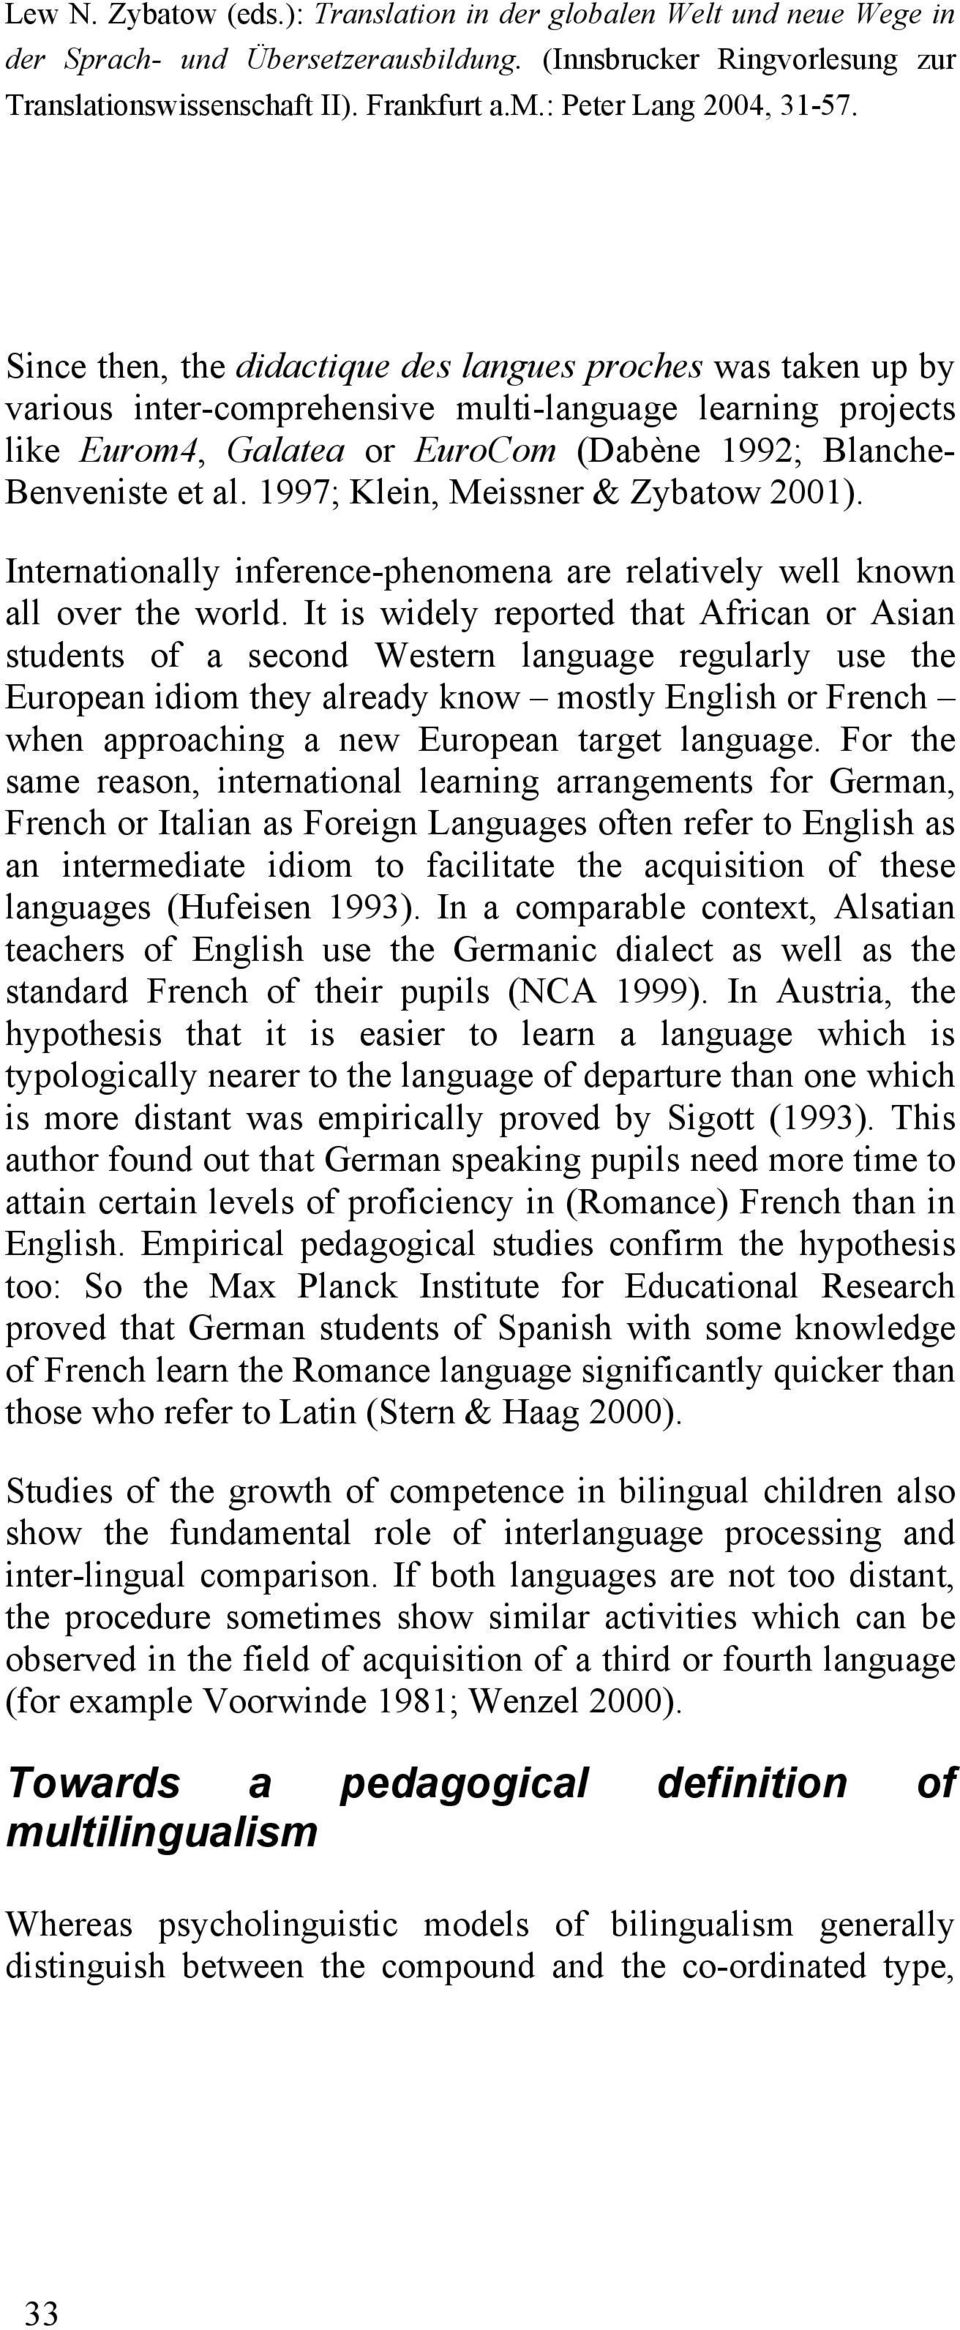 It is widely reported that African or Asian students of a second Western language regularly use the European idiom they already know mostly English or French when approaching a new European target